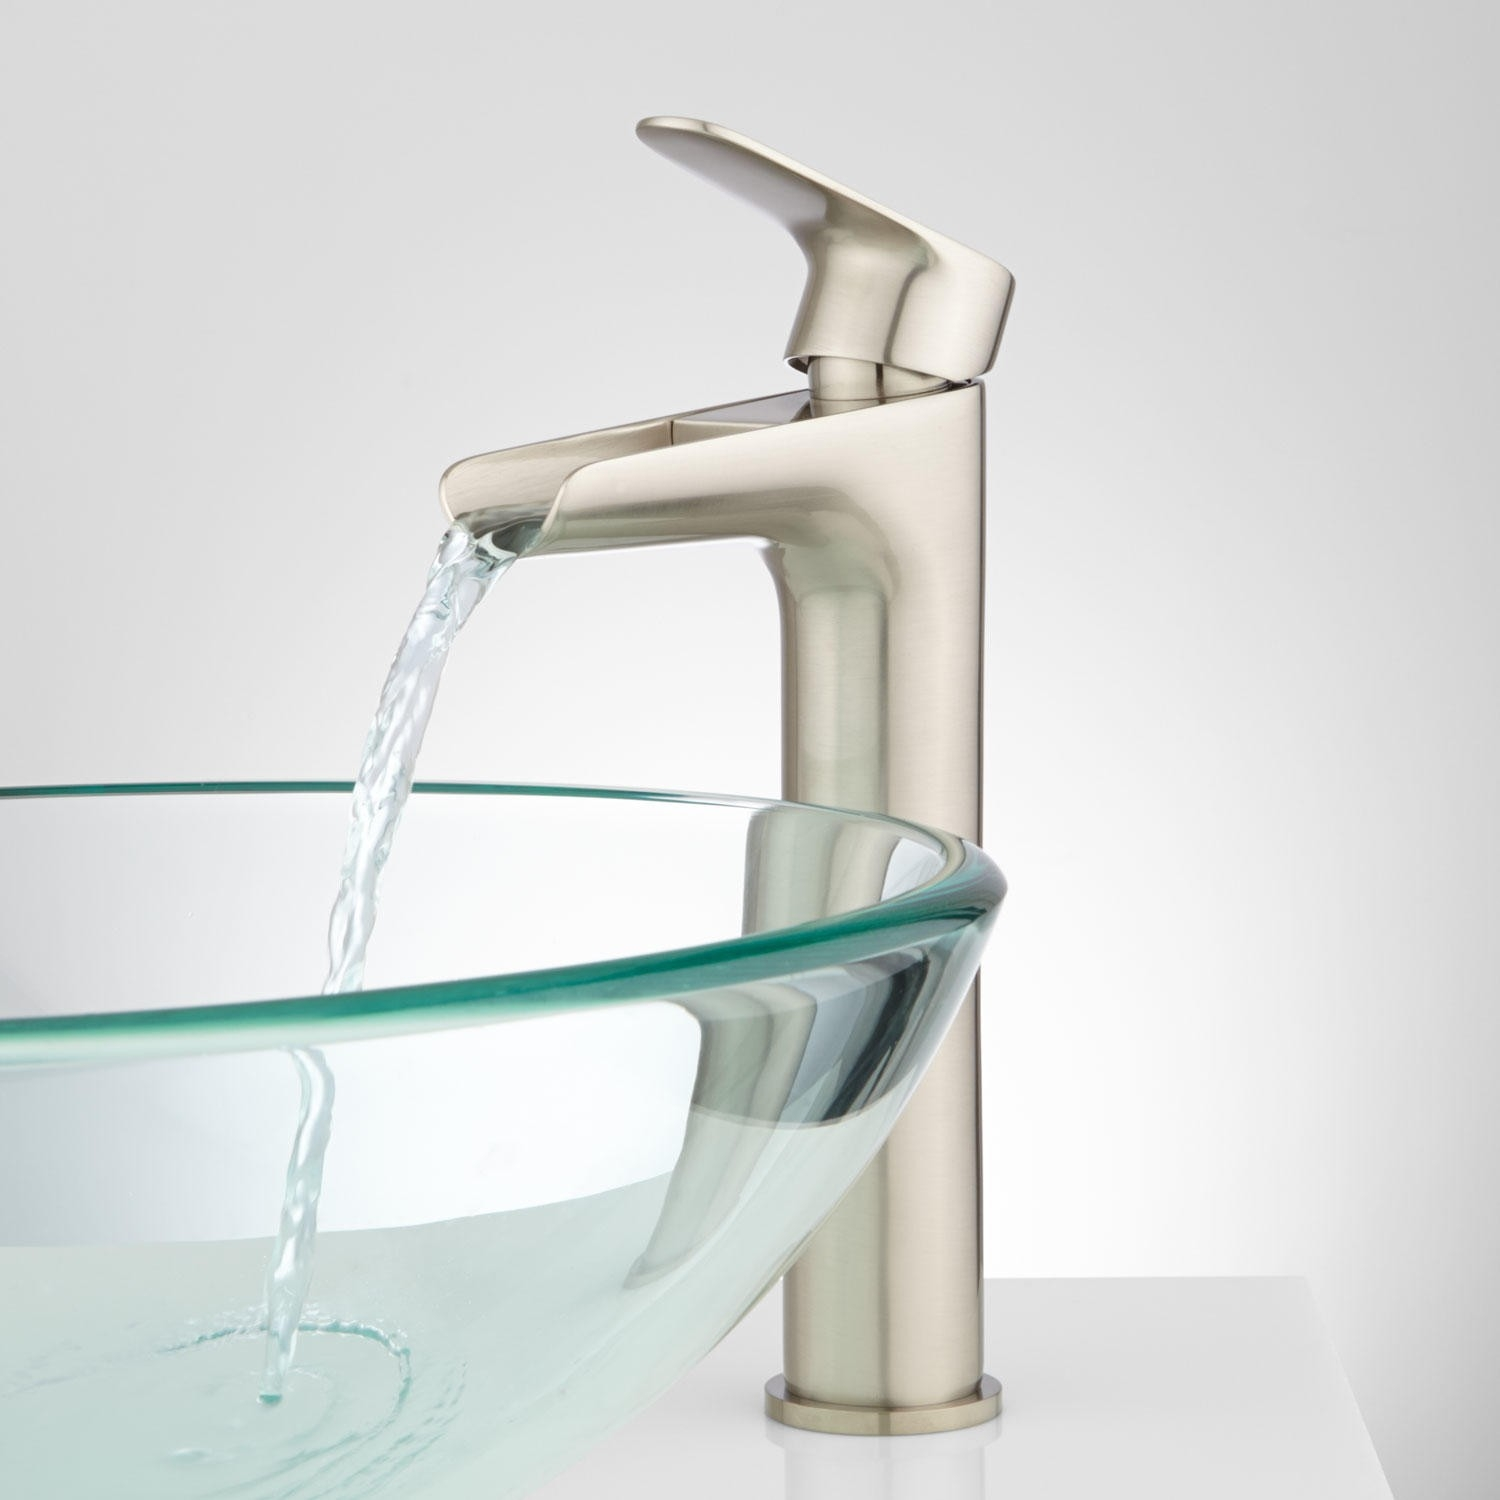 Ideas, single hole bathroom faucets signature hardware with regard to dimensions 1500 x 1500  .